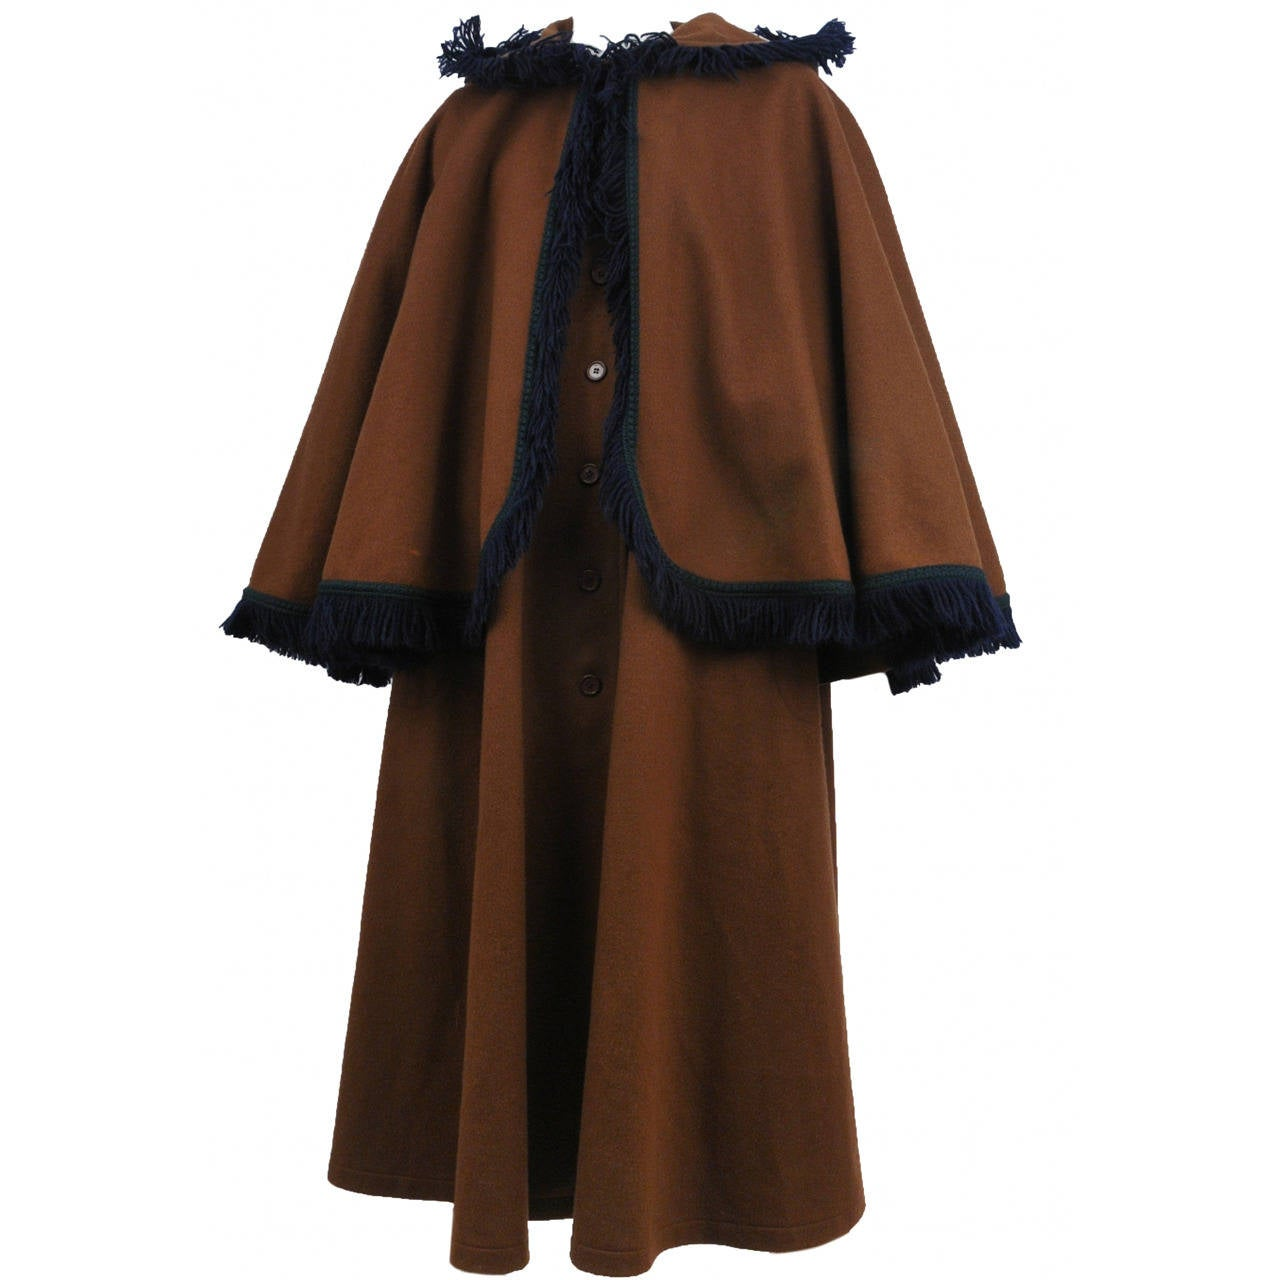 Yves Saint Laurent Brown Wool Cape Coat 2